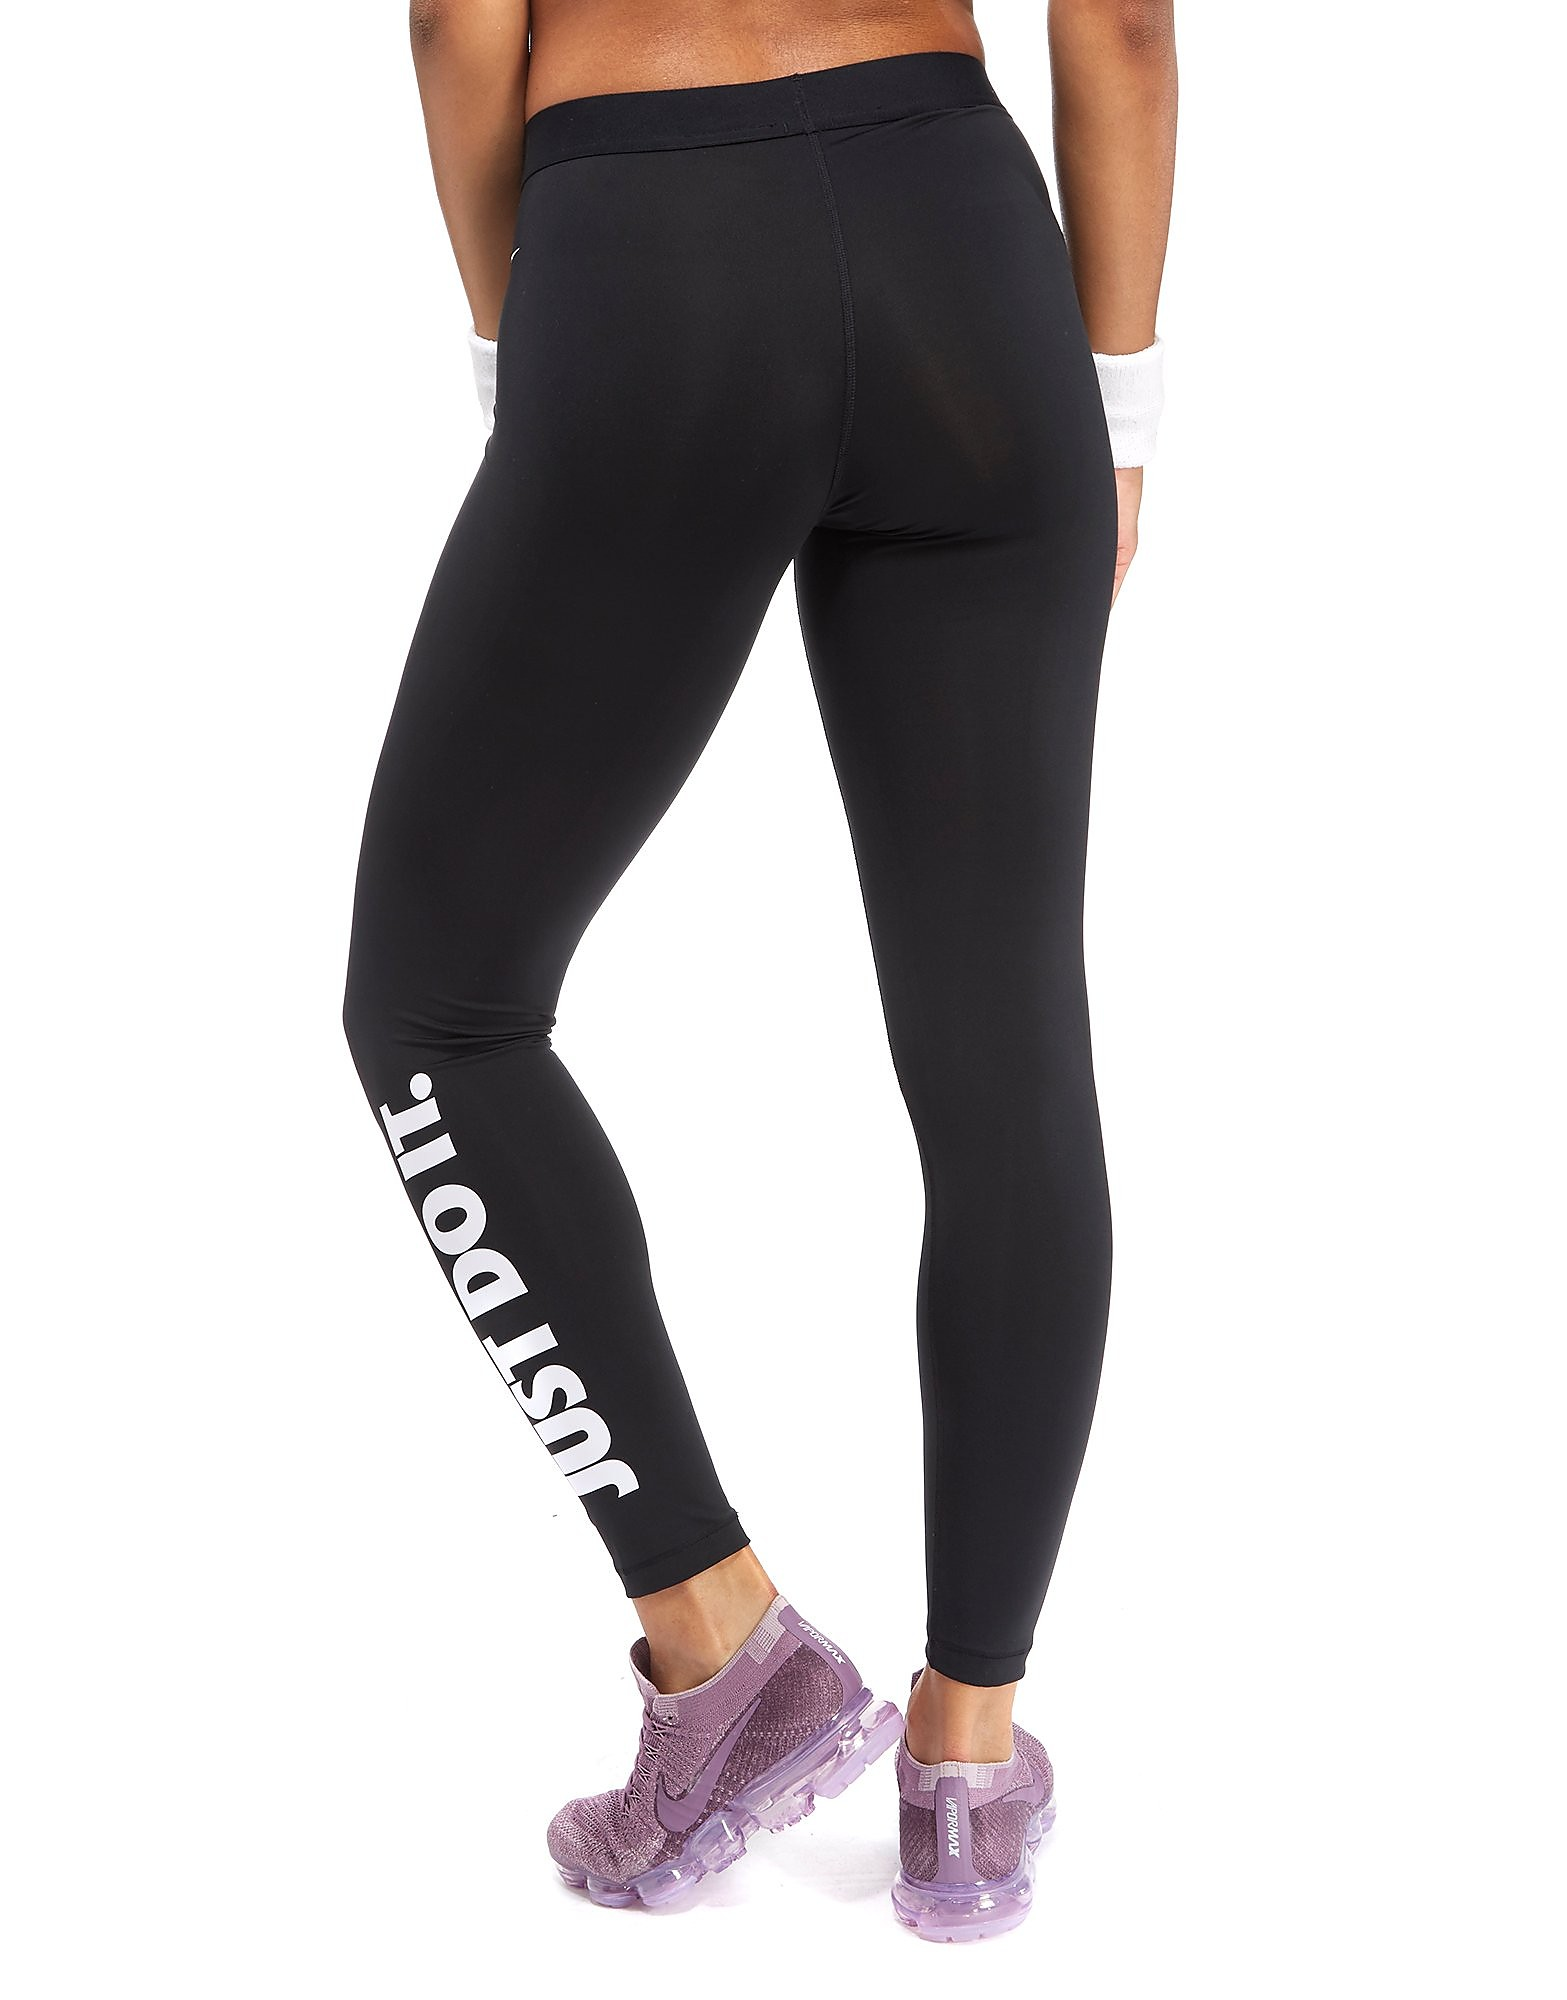 Nike Pro Just Do It Tights